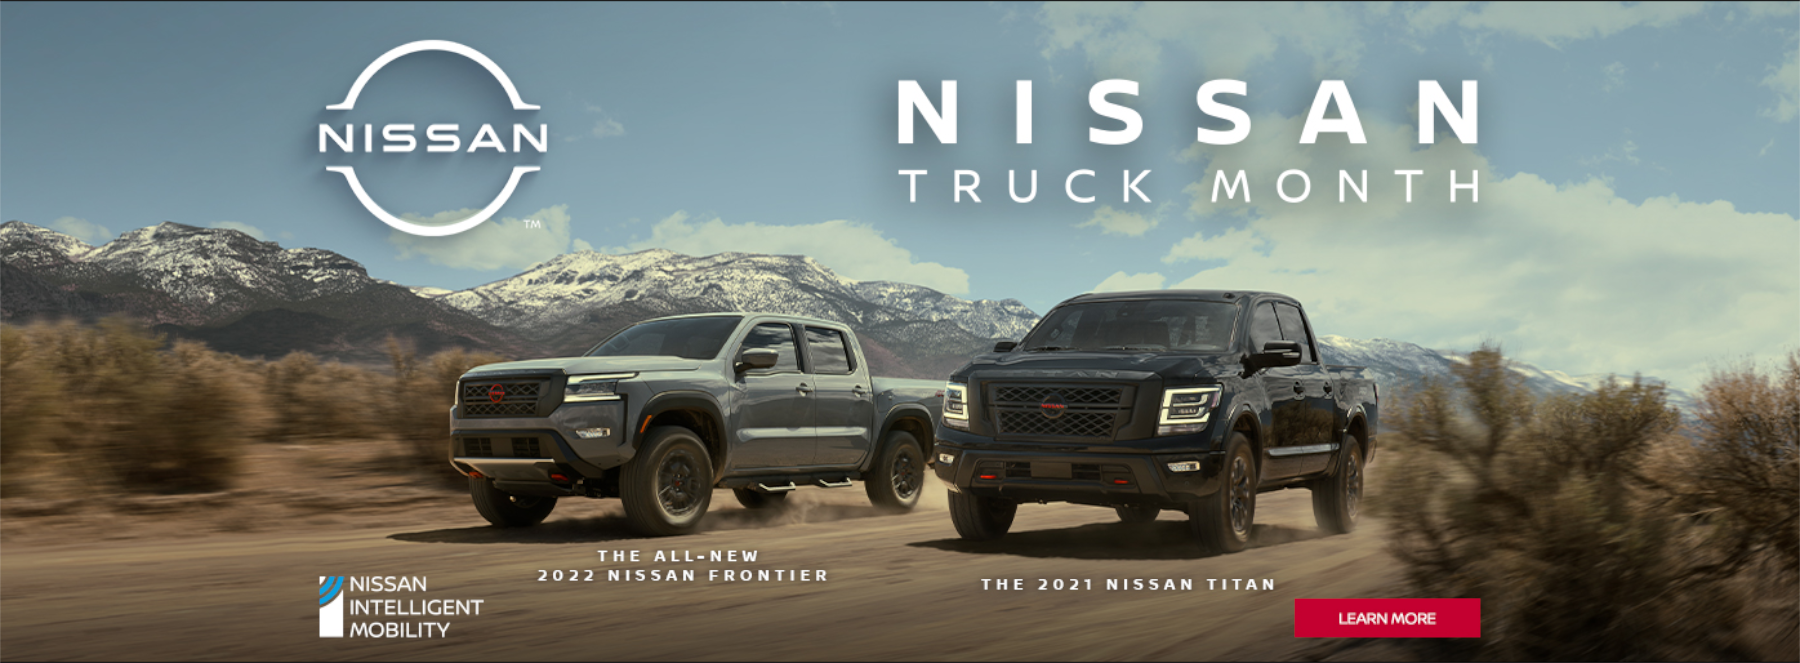 Nissan Frontier and Nissan Titan